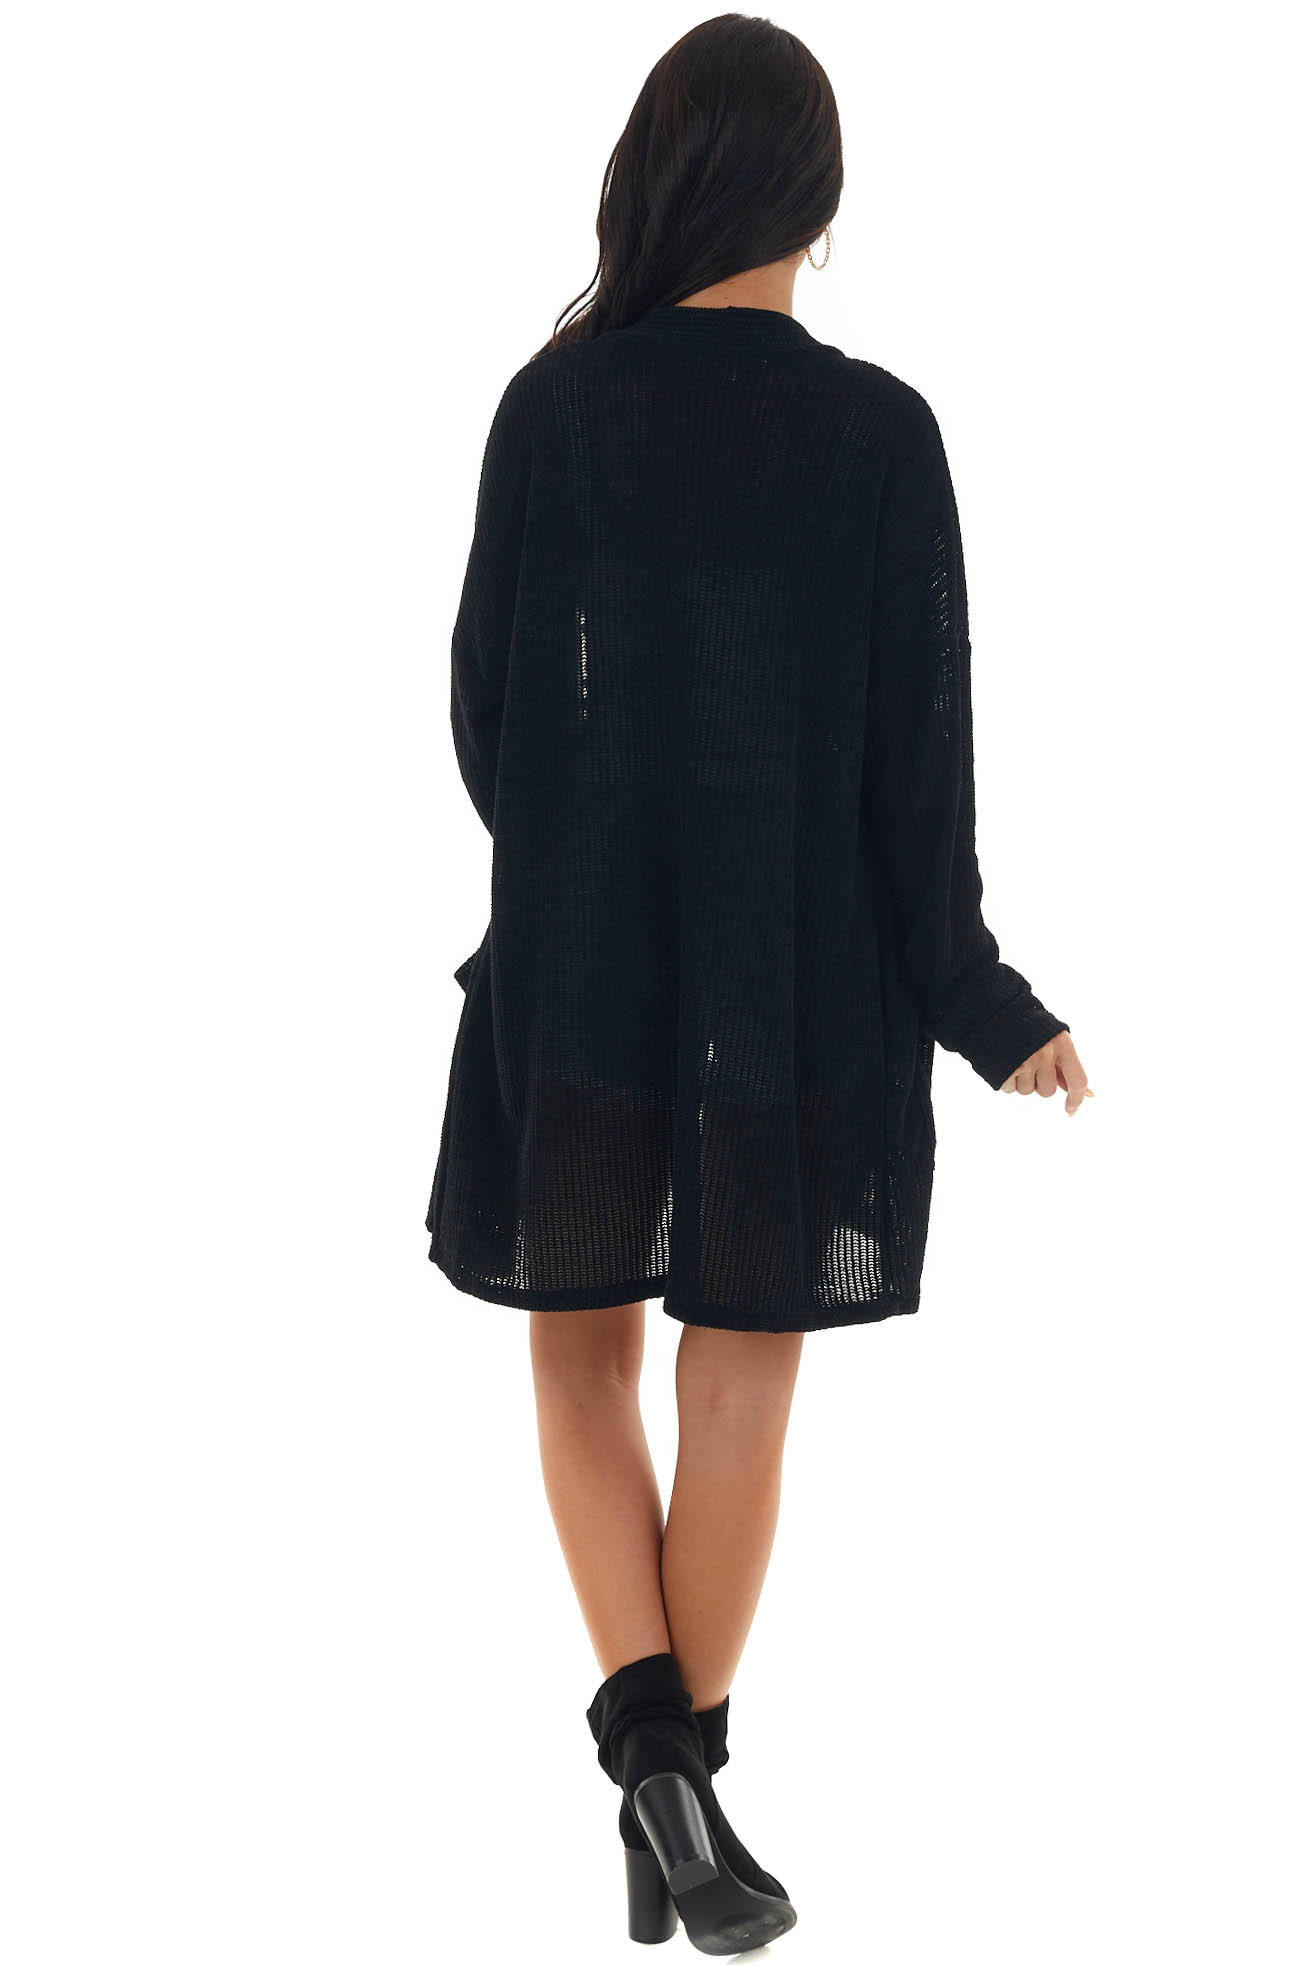 Black Chenille Cardigan with Pockets